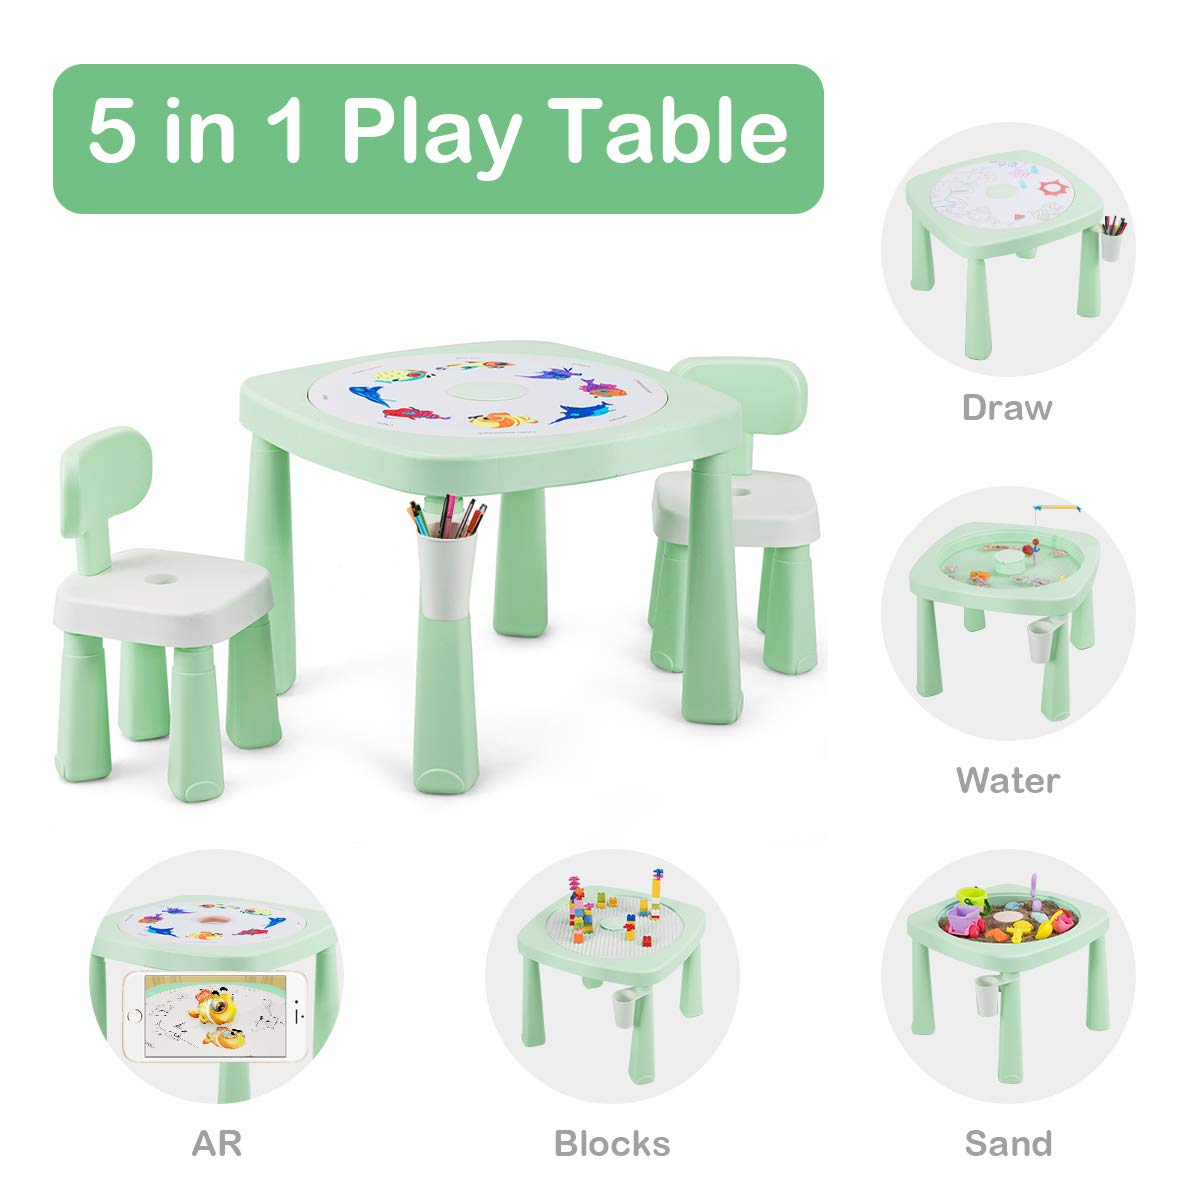 Costzon Kids Table and 2 Chairs Set, 5 in 1 Game Table for Drawing, Playing Sand & Water, Building Blocks, AR Recognition, Children Activity Table w/Pen Holder, Removable Cover, Storage Space (Green)